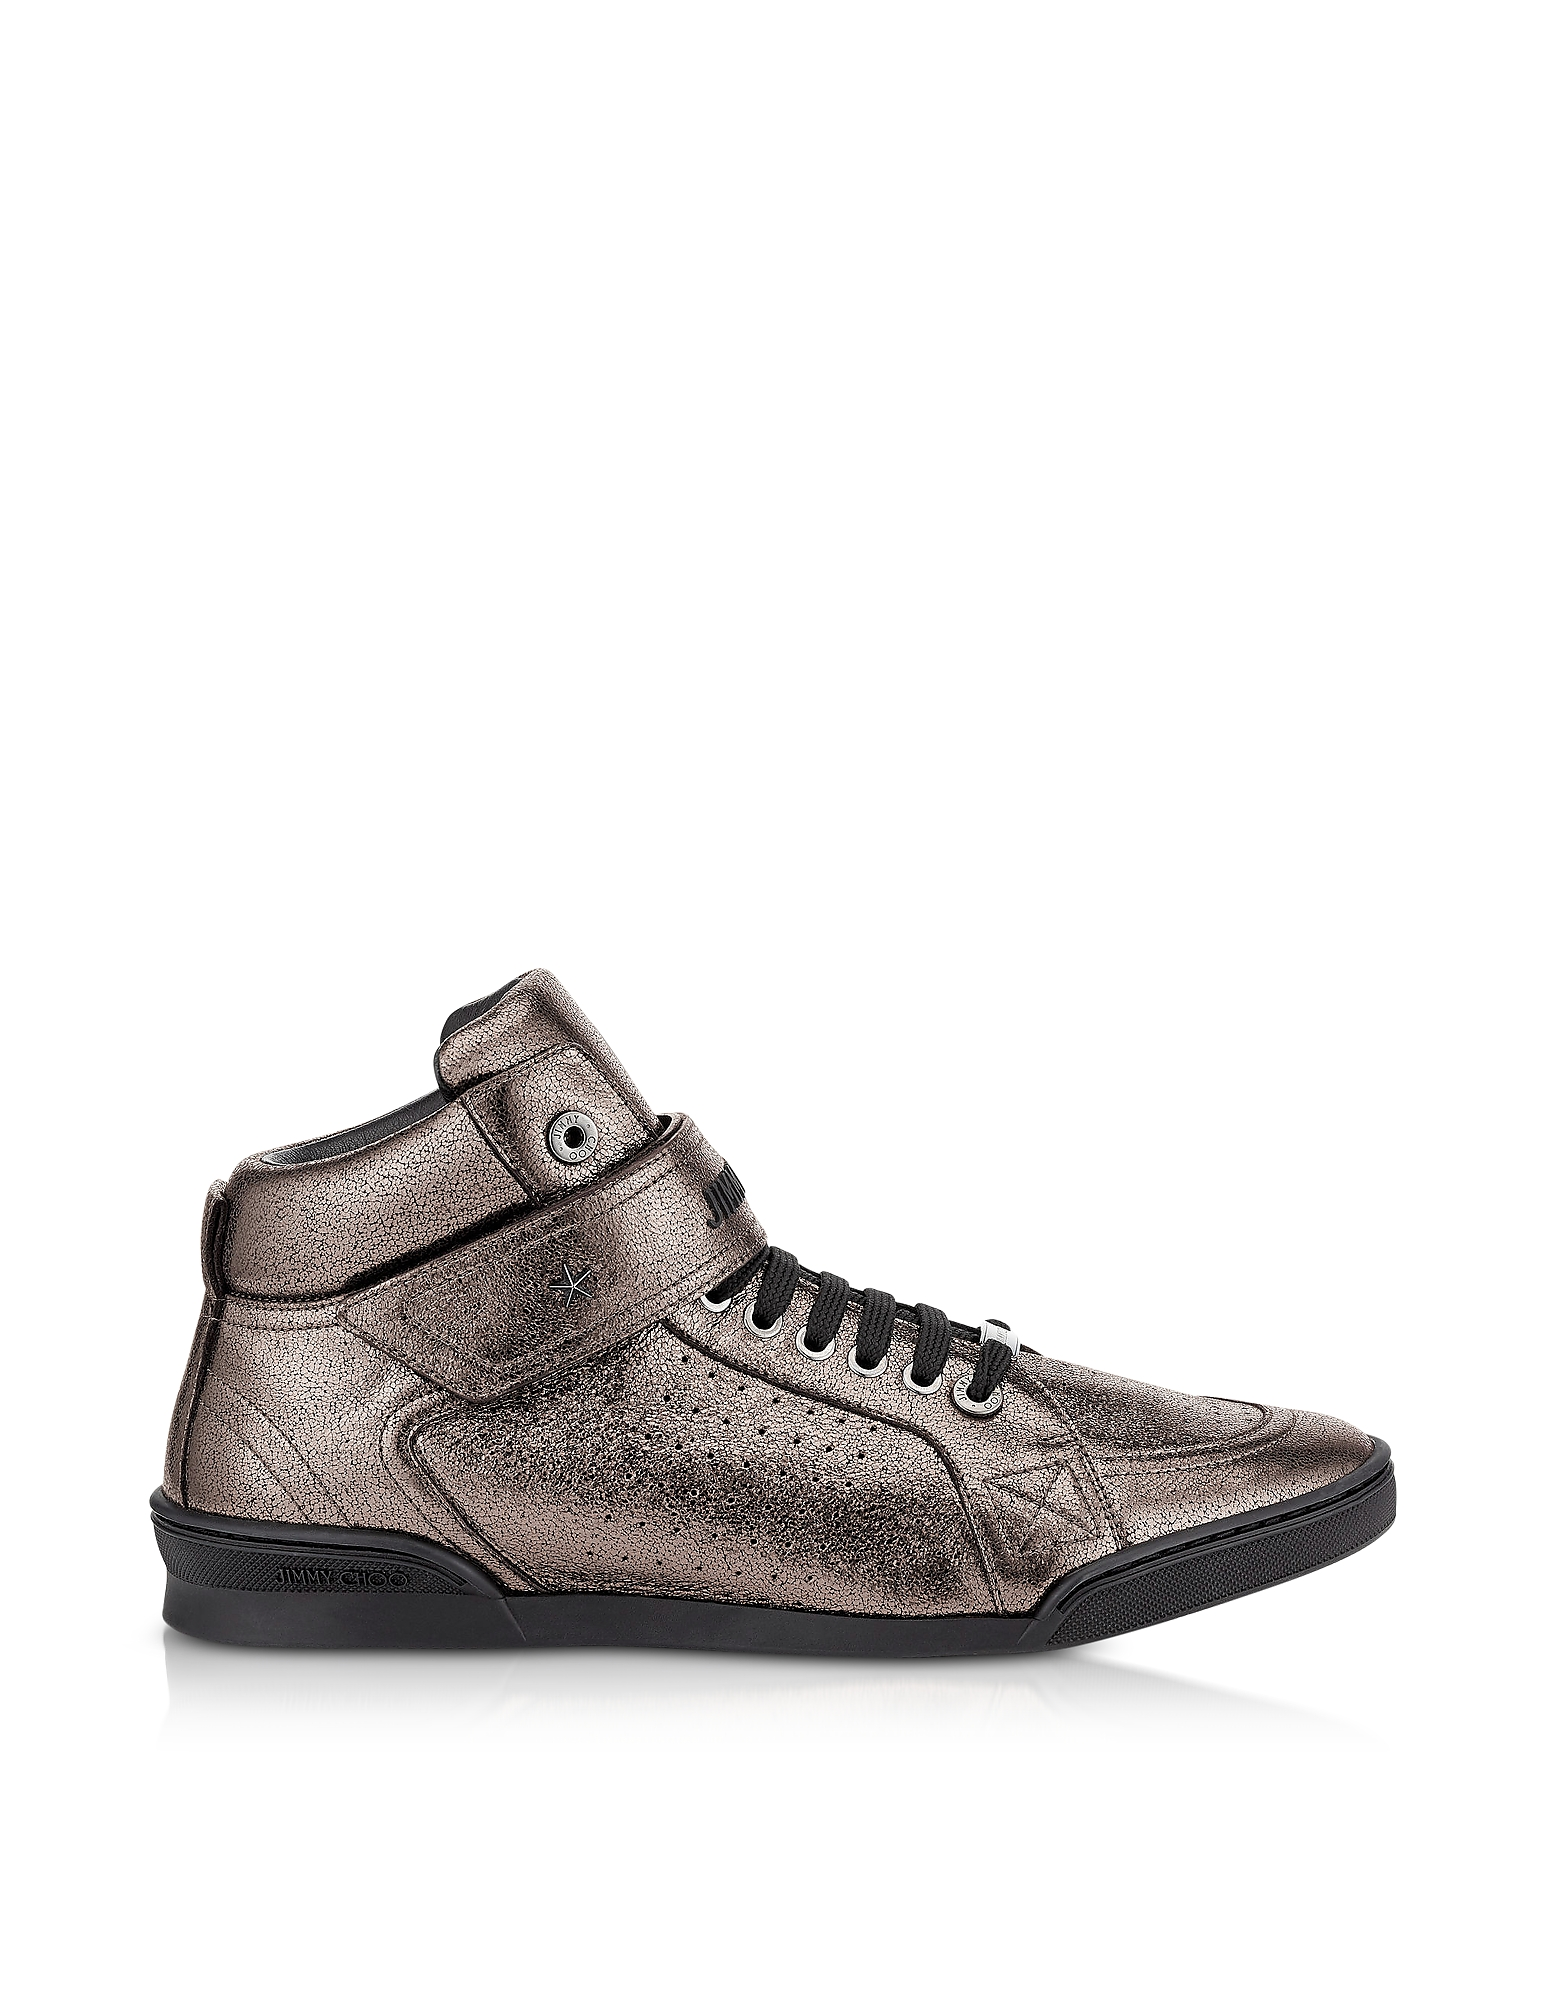 Jimmy Choo Shoes, Lewis EOE Gunmetal Metallic Soft Leather High Top Sneakers